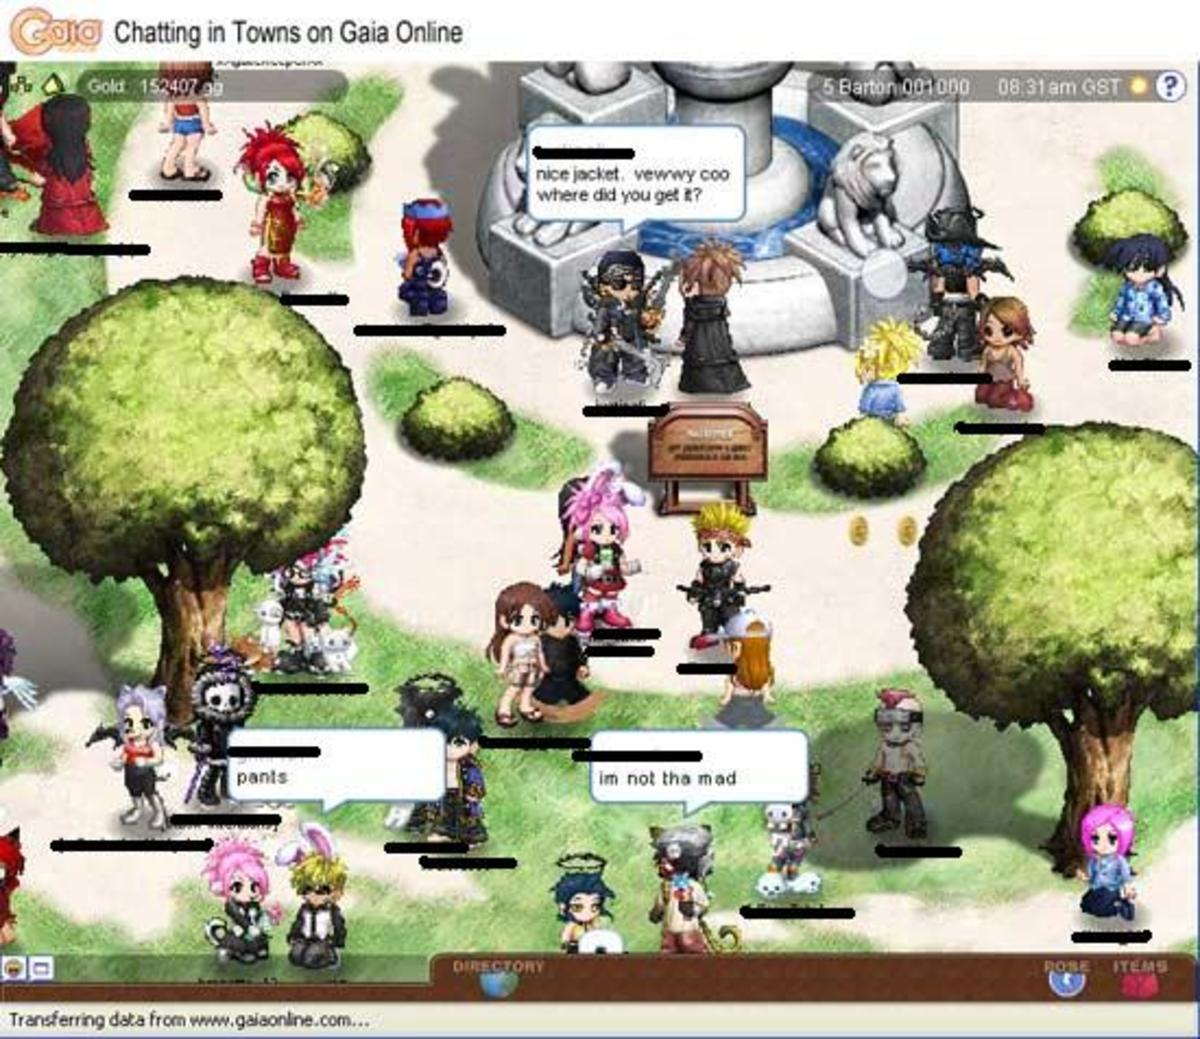 Similar to IMVU you can visit towns and rooms and chat with people!